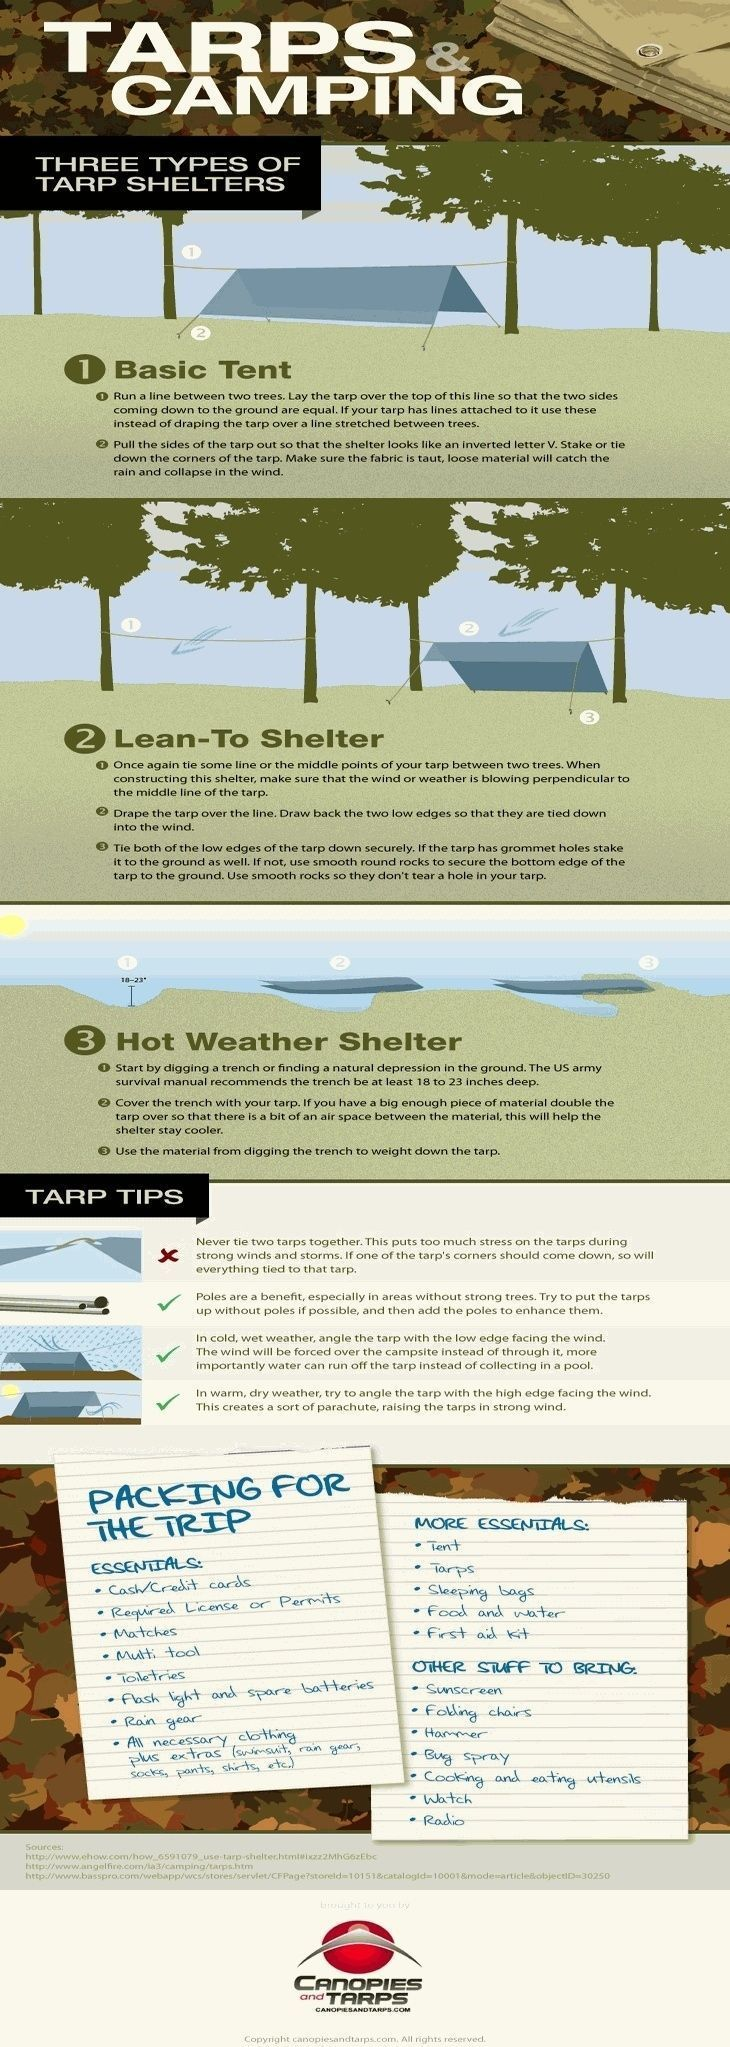 Disaster Preparedness - Camping In The Rain | Rain Gear Checklist and DIY Shelter by Survival Life http://survivallife.com/2014/06/10/disaster-preparedness-camping-in-the-rain/